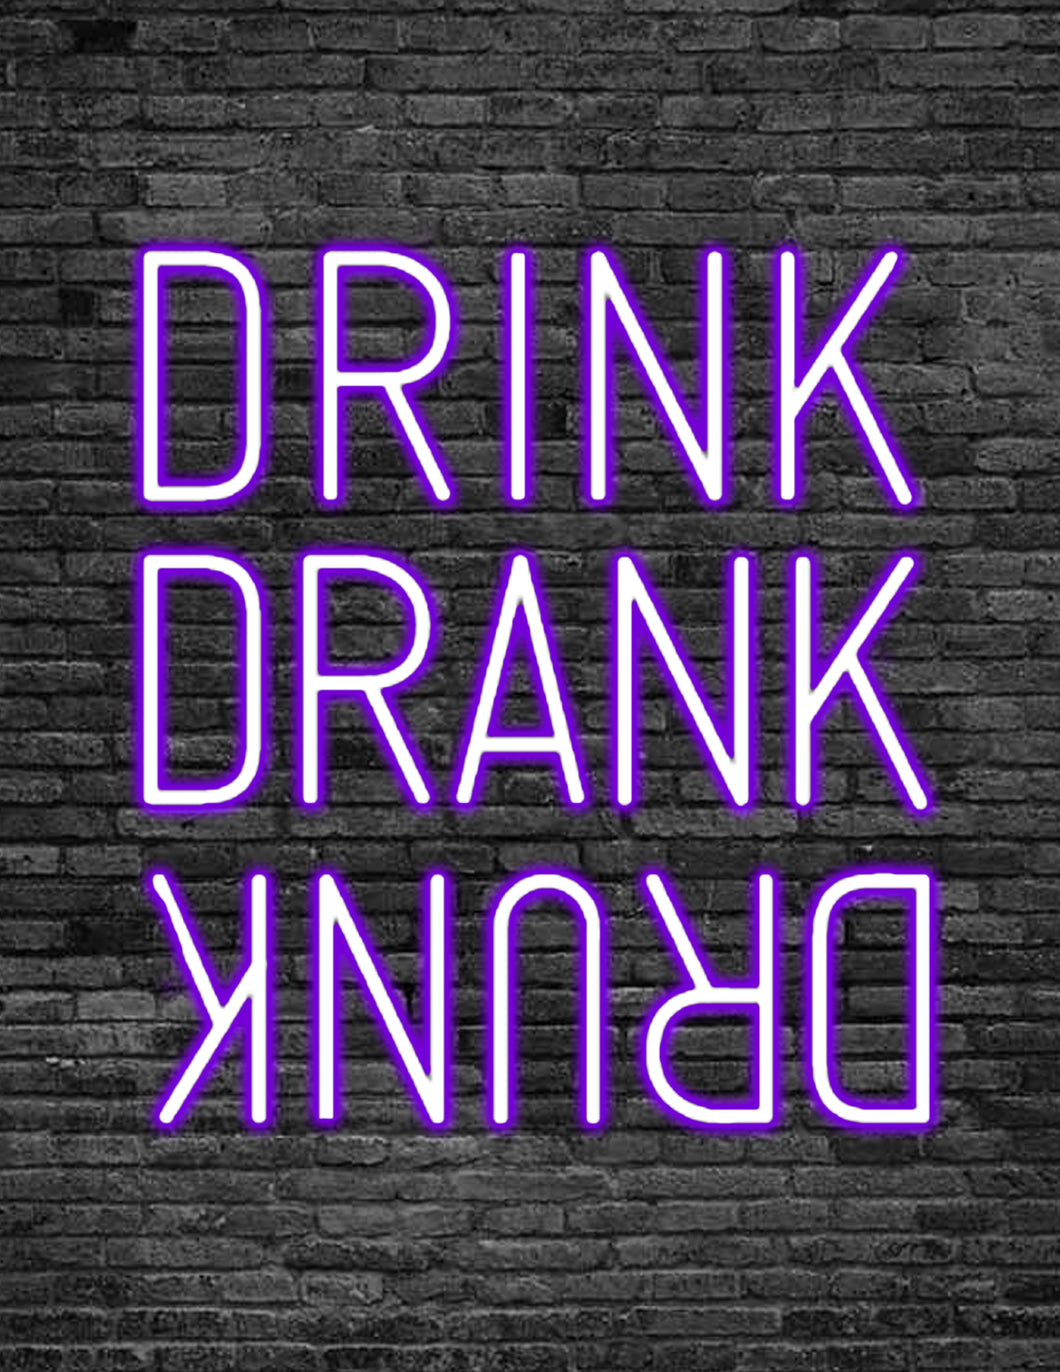 'DRINK DRANK DRUNK' Neon Sign